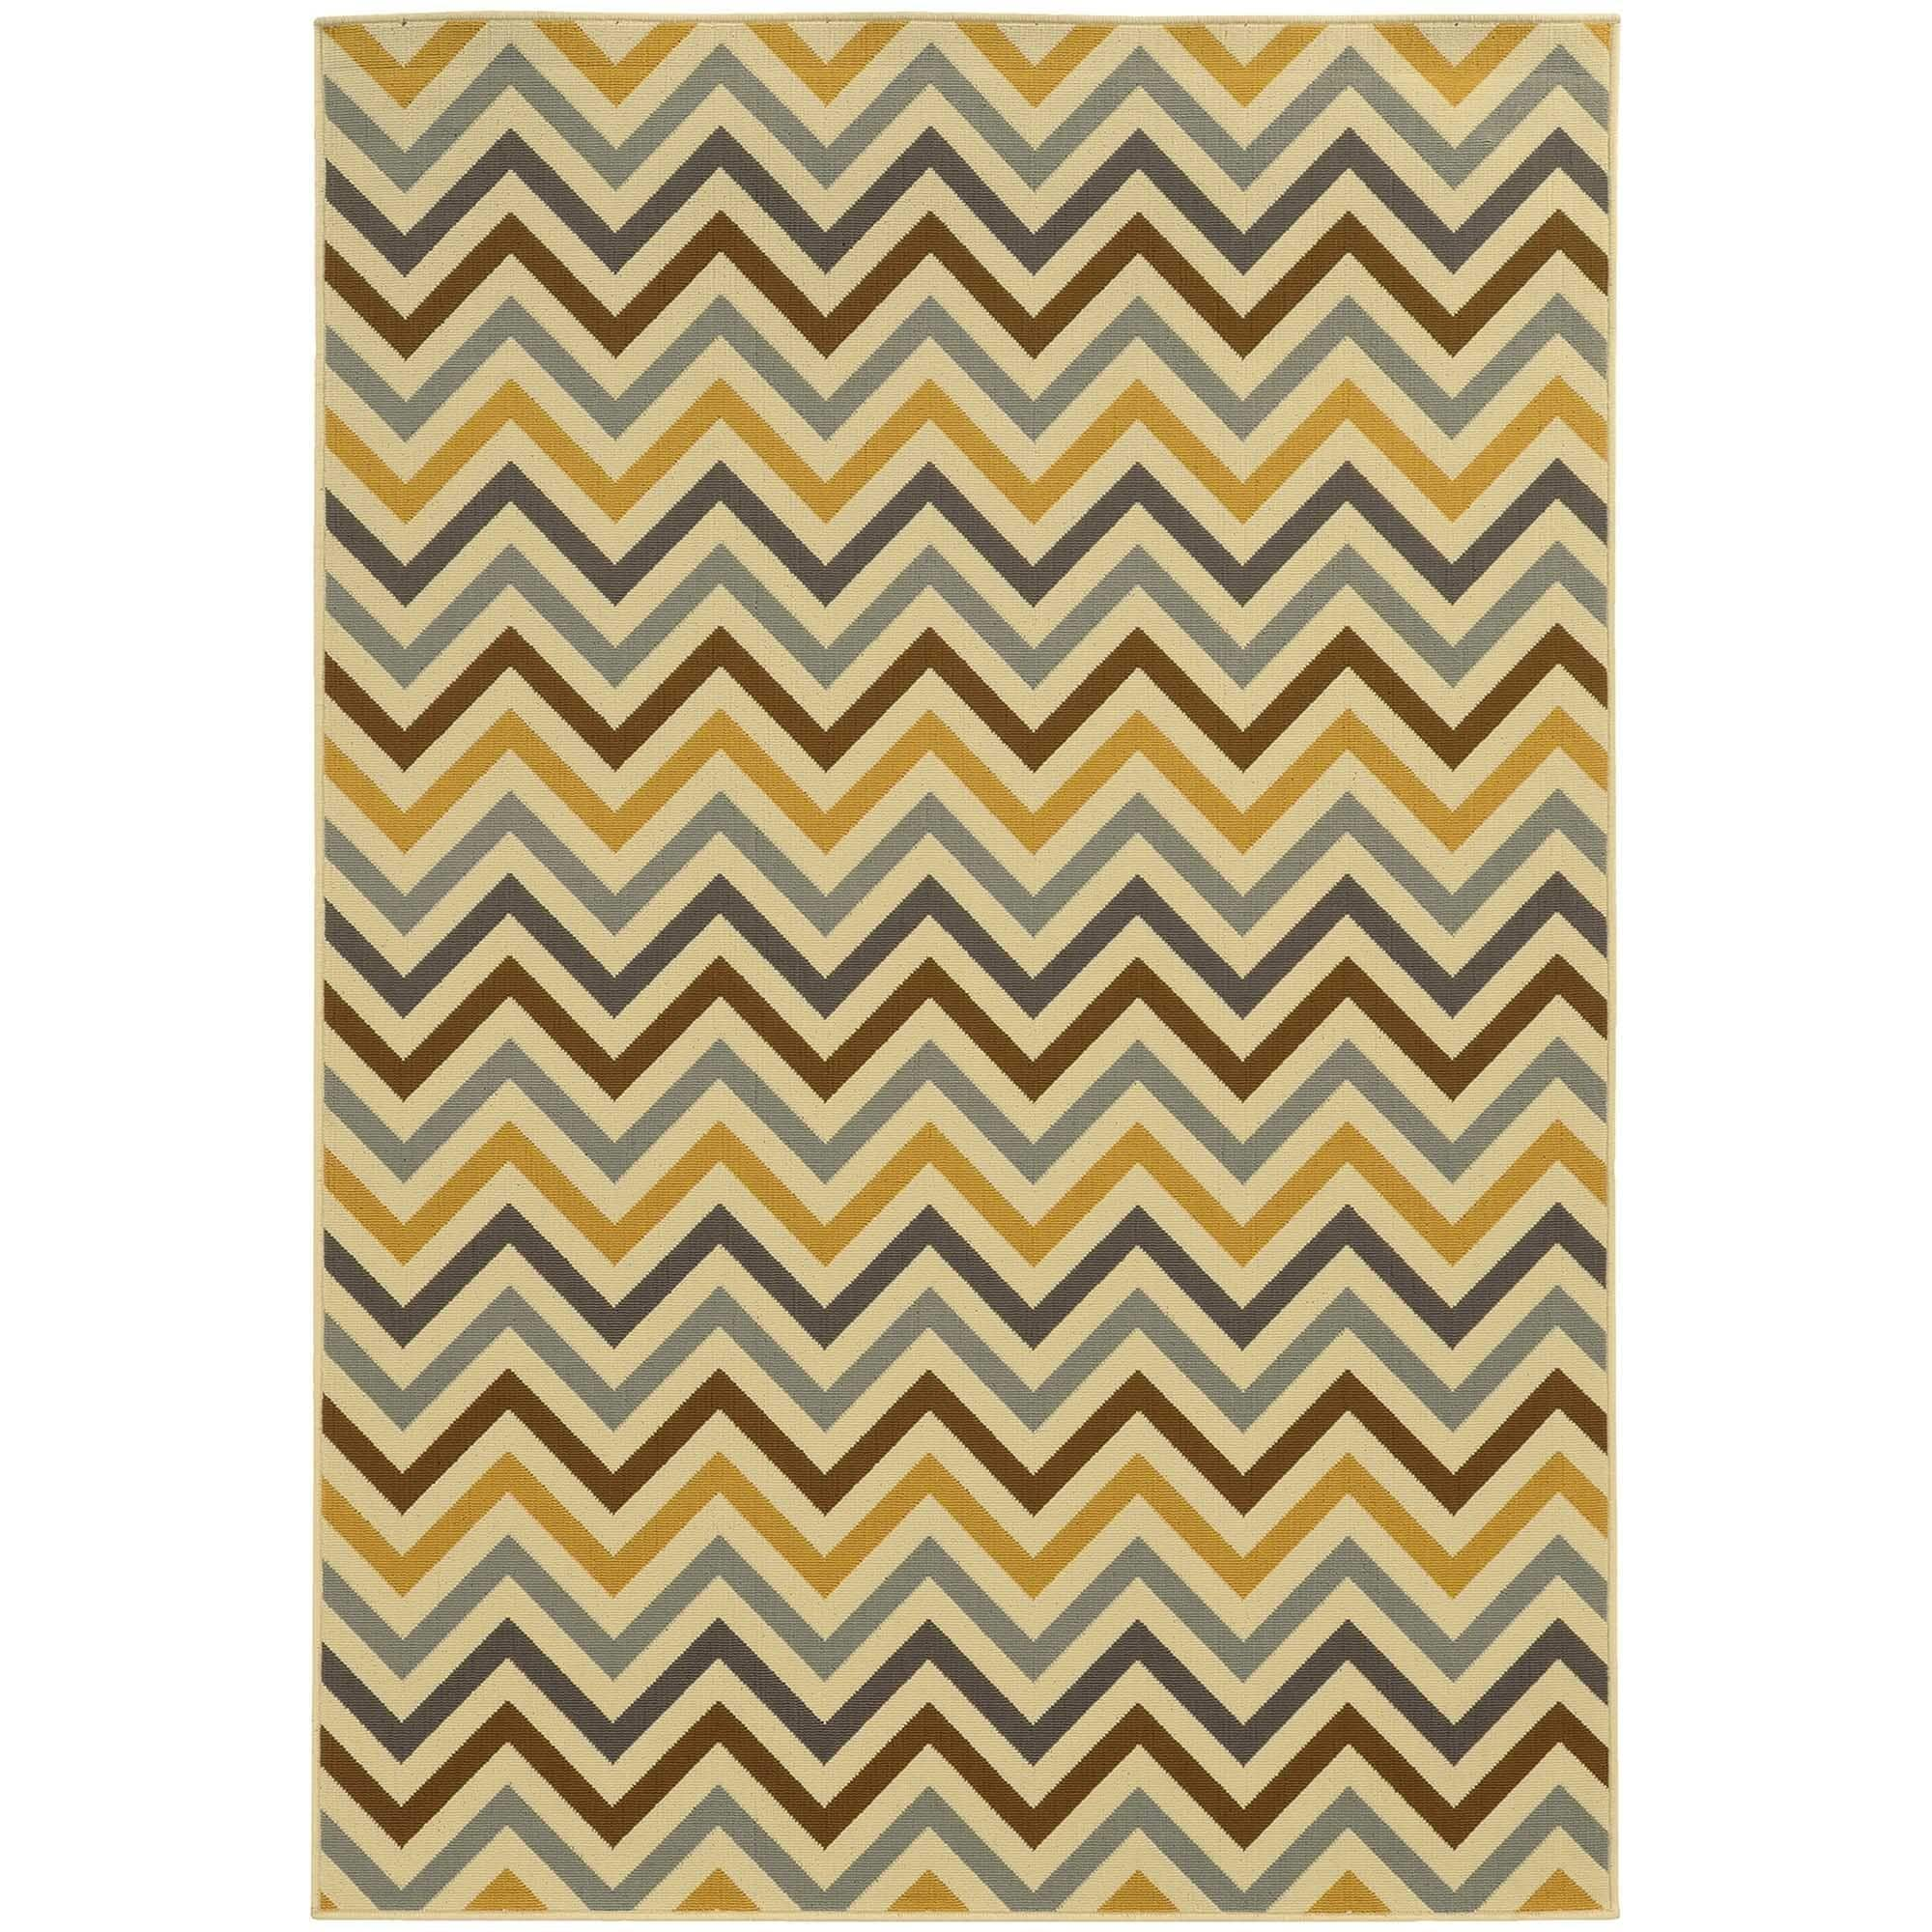 "Style Haven StyleHaven Indoor/ Outdoor Chevron Rug (2'5 x 4'5) - 2'5"" x 4'5"""